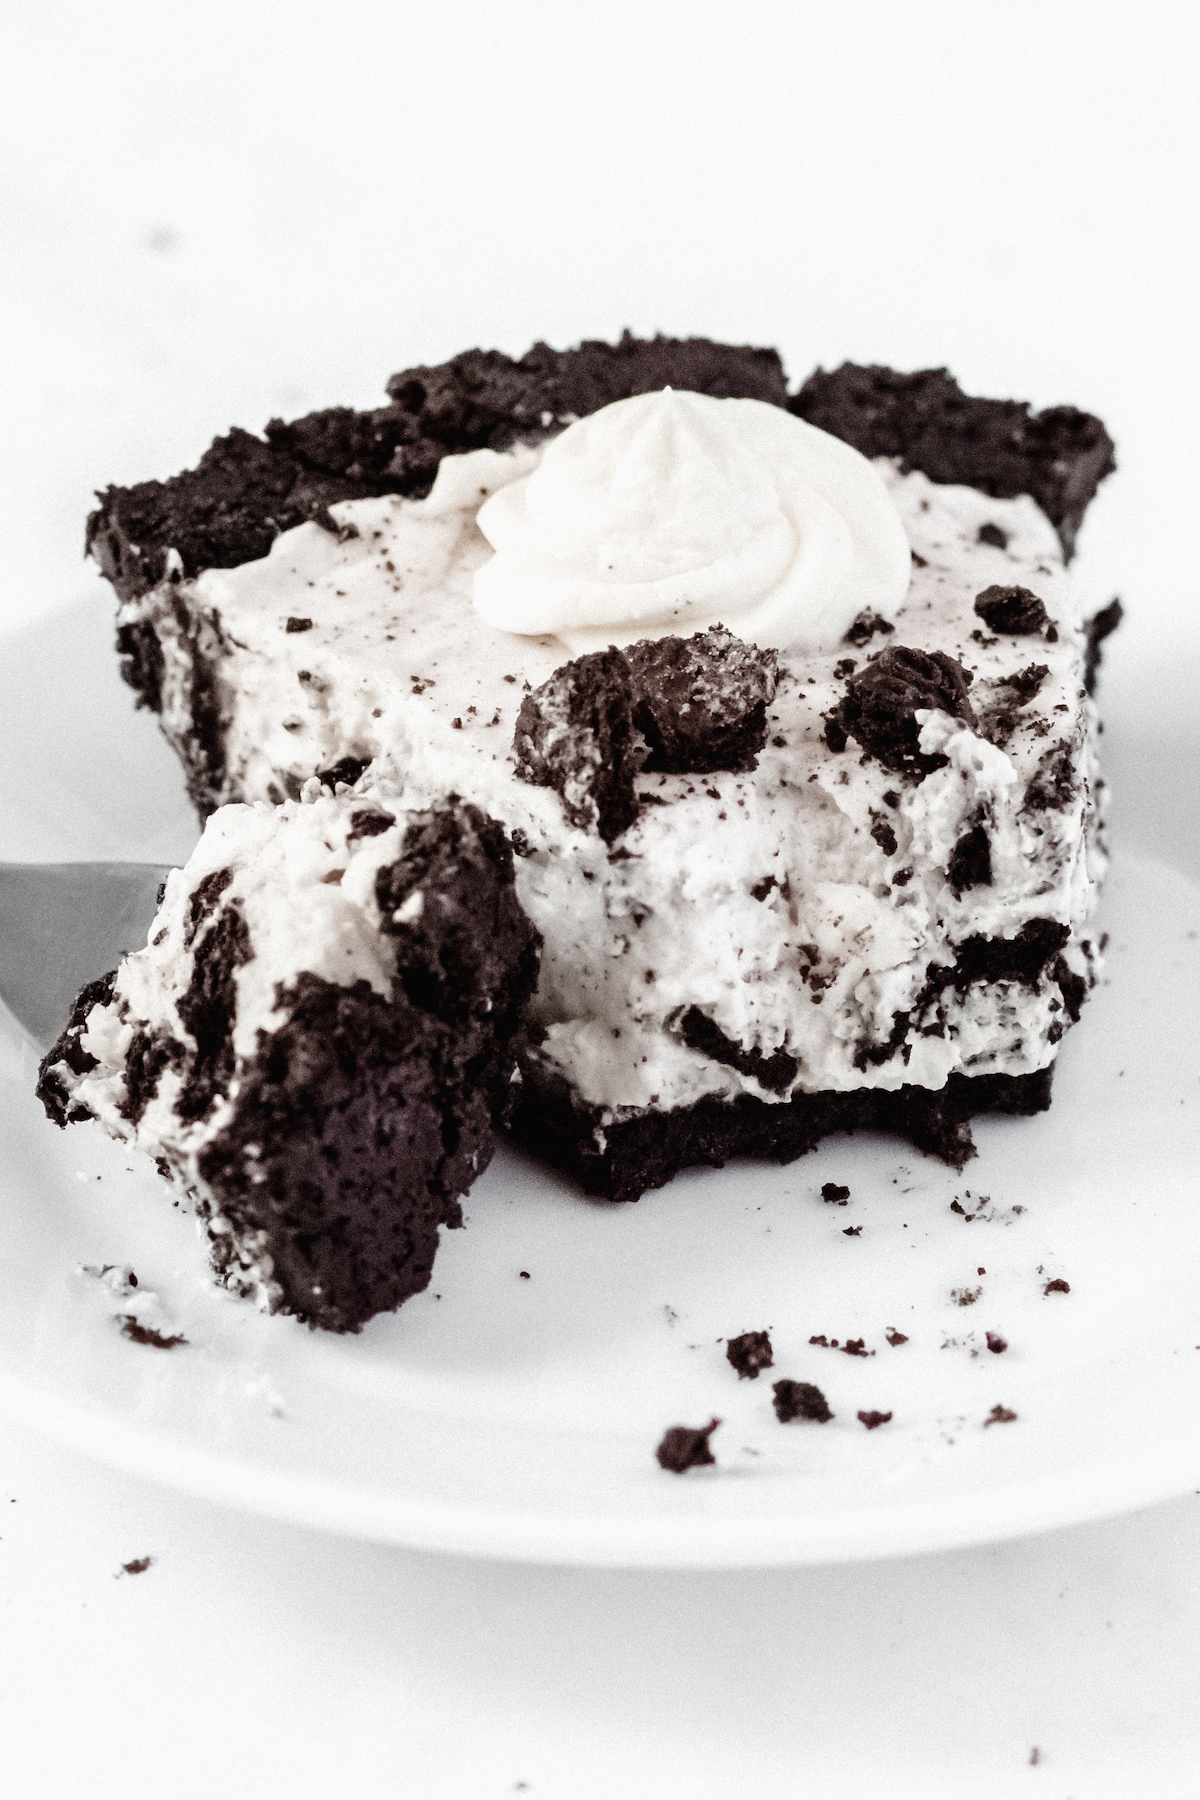 A slice of cookies & cream pie with a forkful taken out of it sits on a white plate on a white background